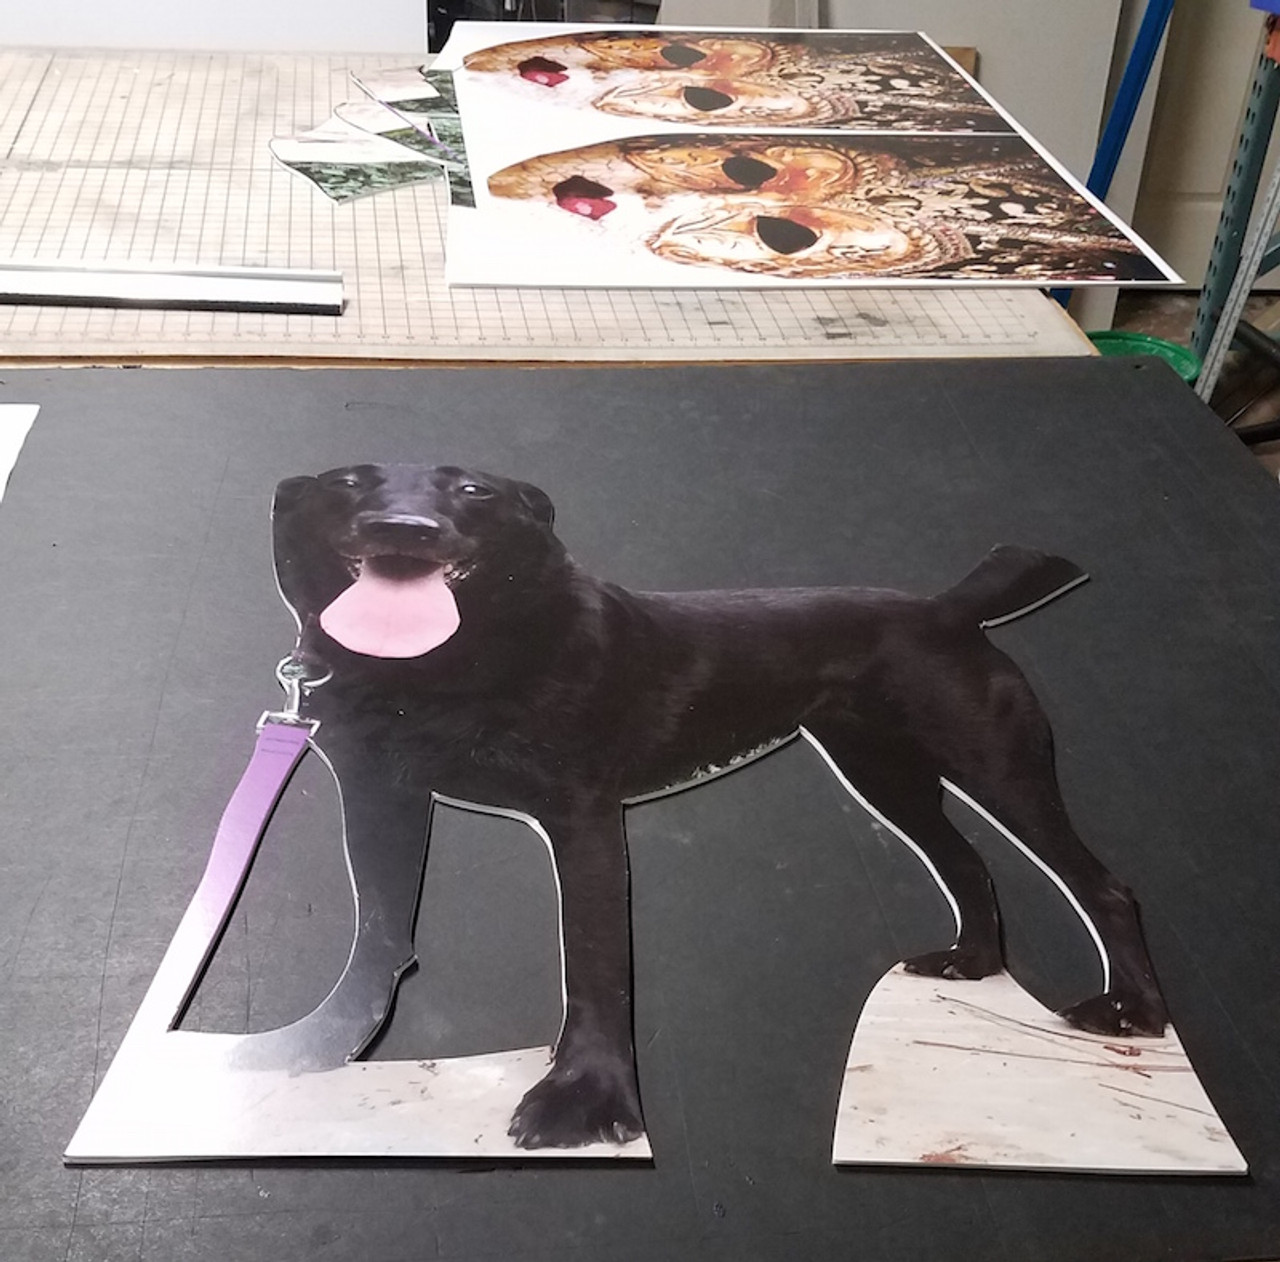 Big,Head,Face,Print,Cut,LIFE-SIZE, PHOTO, CUT,OUT,MOUNTED, POSTERS, FOAM, CORE, BOARD, PRINTING ,MOUNTED, PRINTED ,CUT OUT,FoamCore,Nightclub,Party,VIP